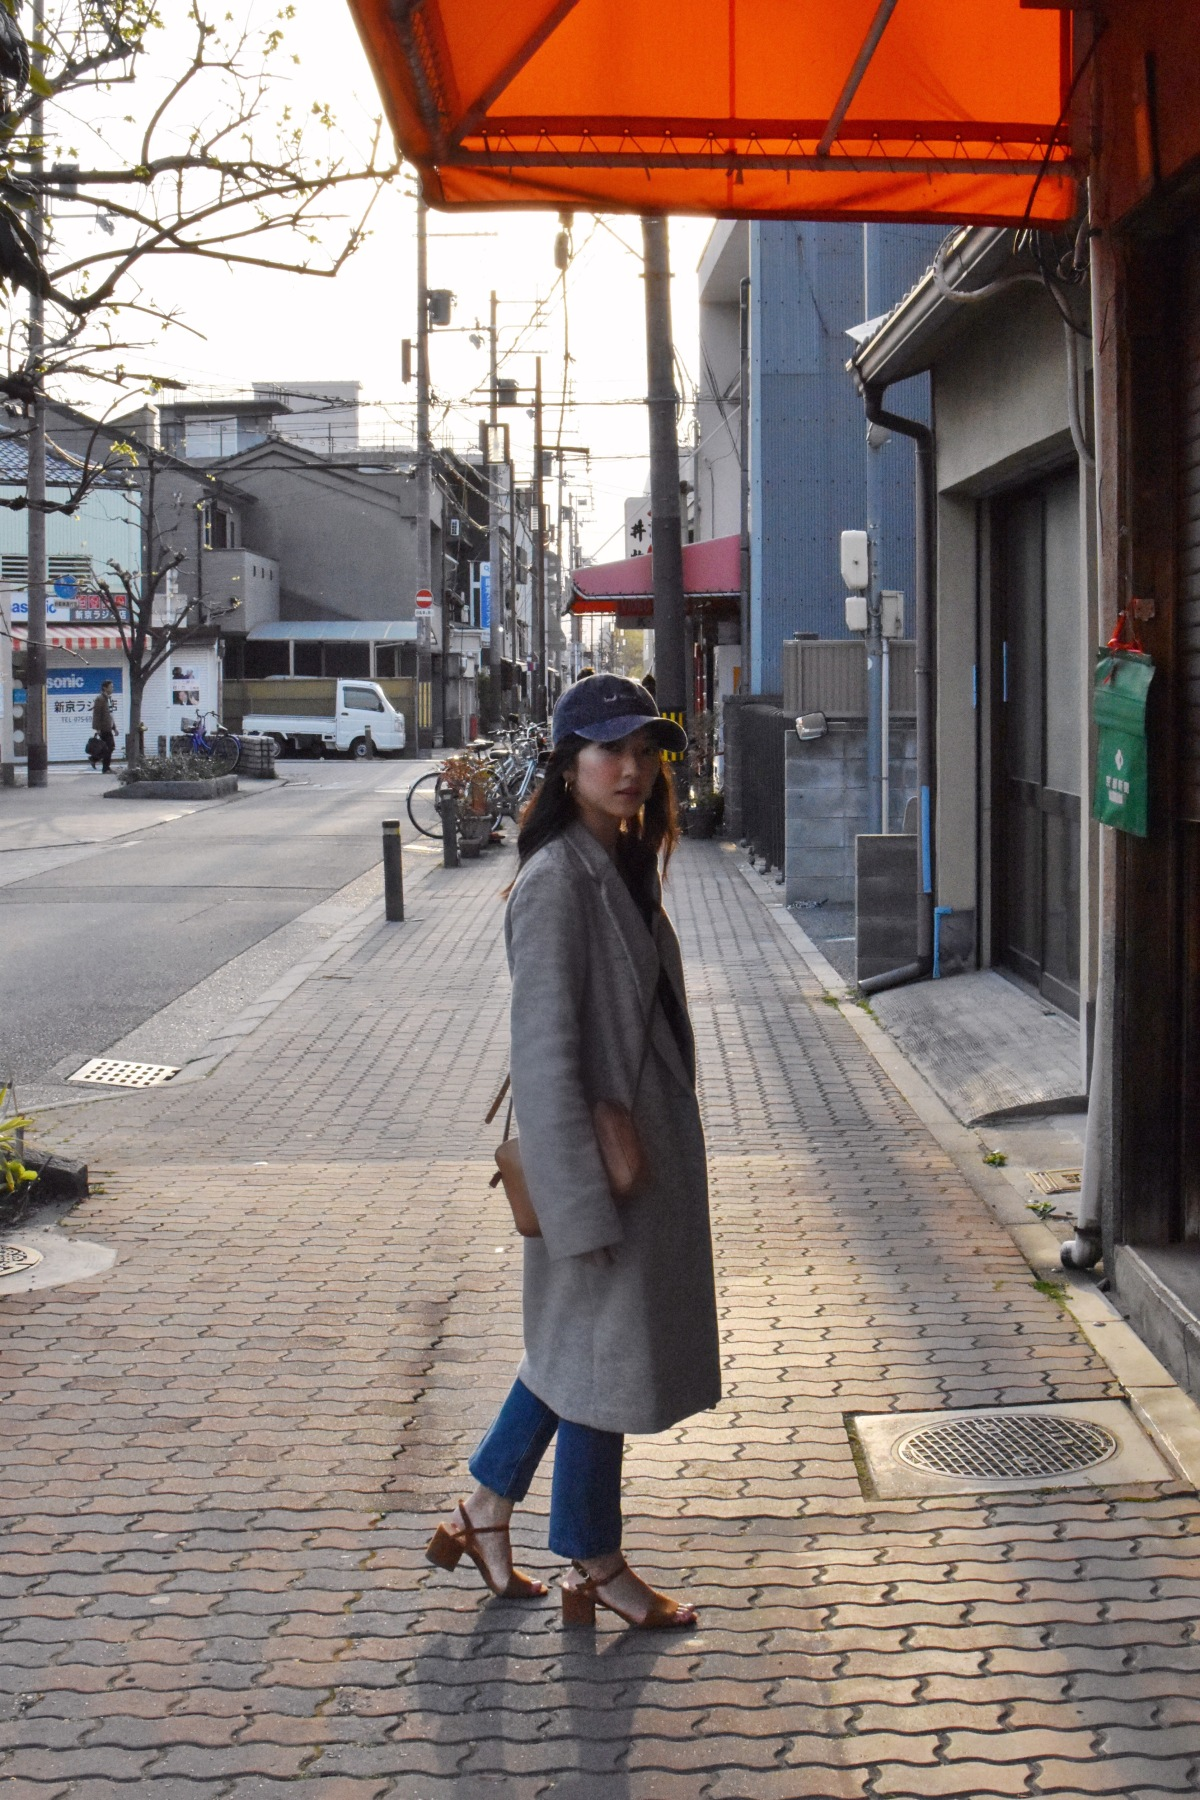 Japan, koenji, tokyo, ootd, casual chic vibe, bad hair day cap